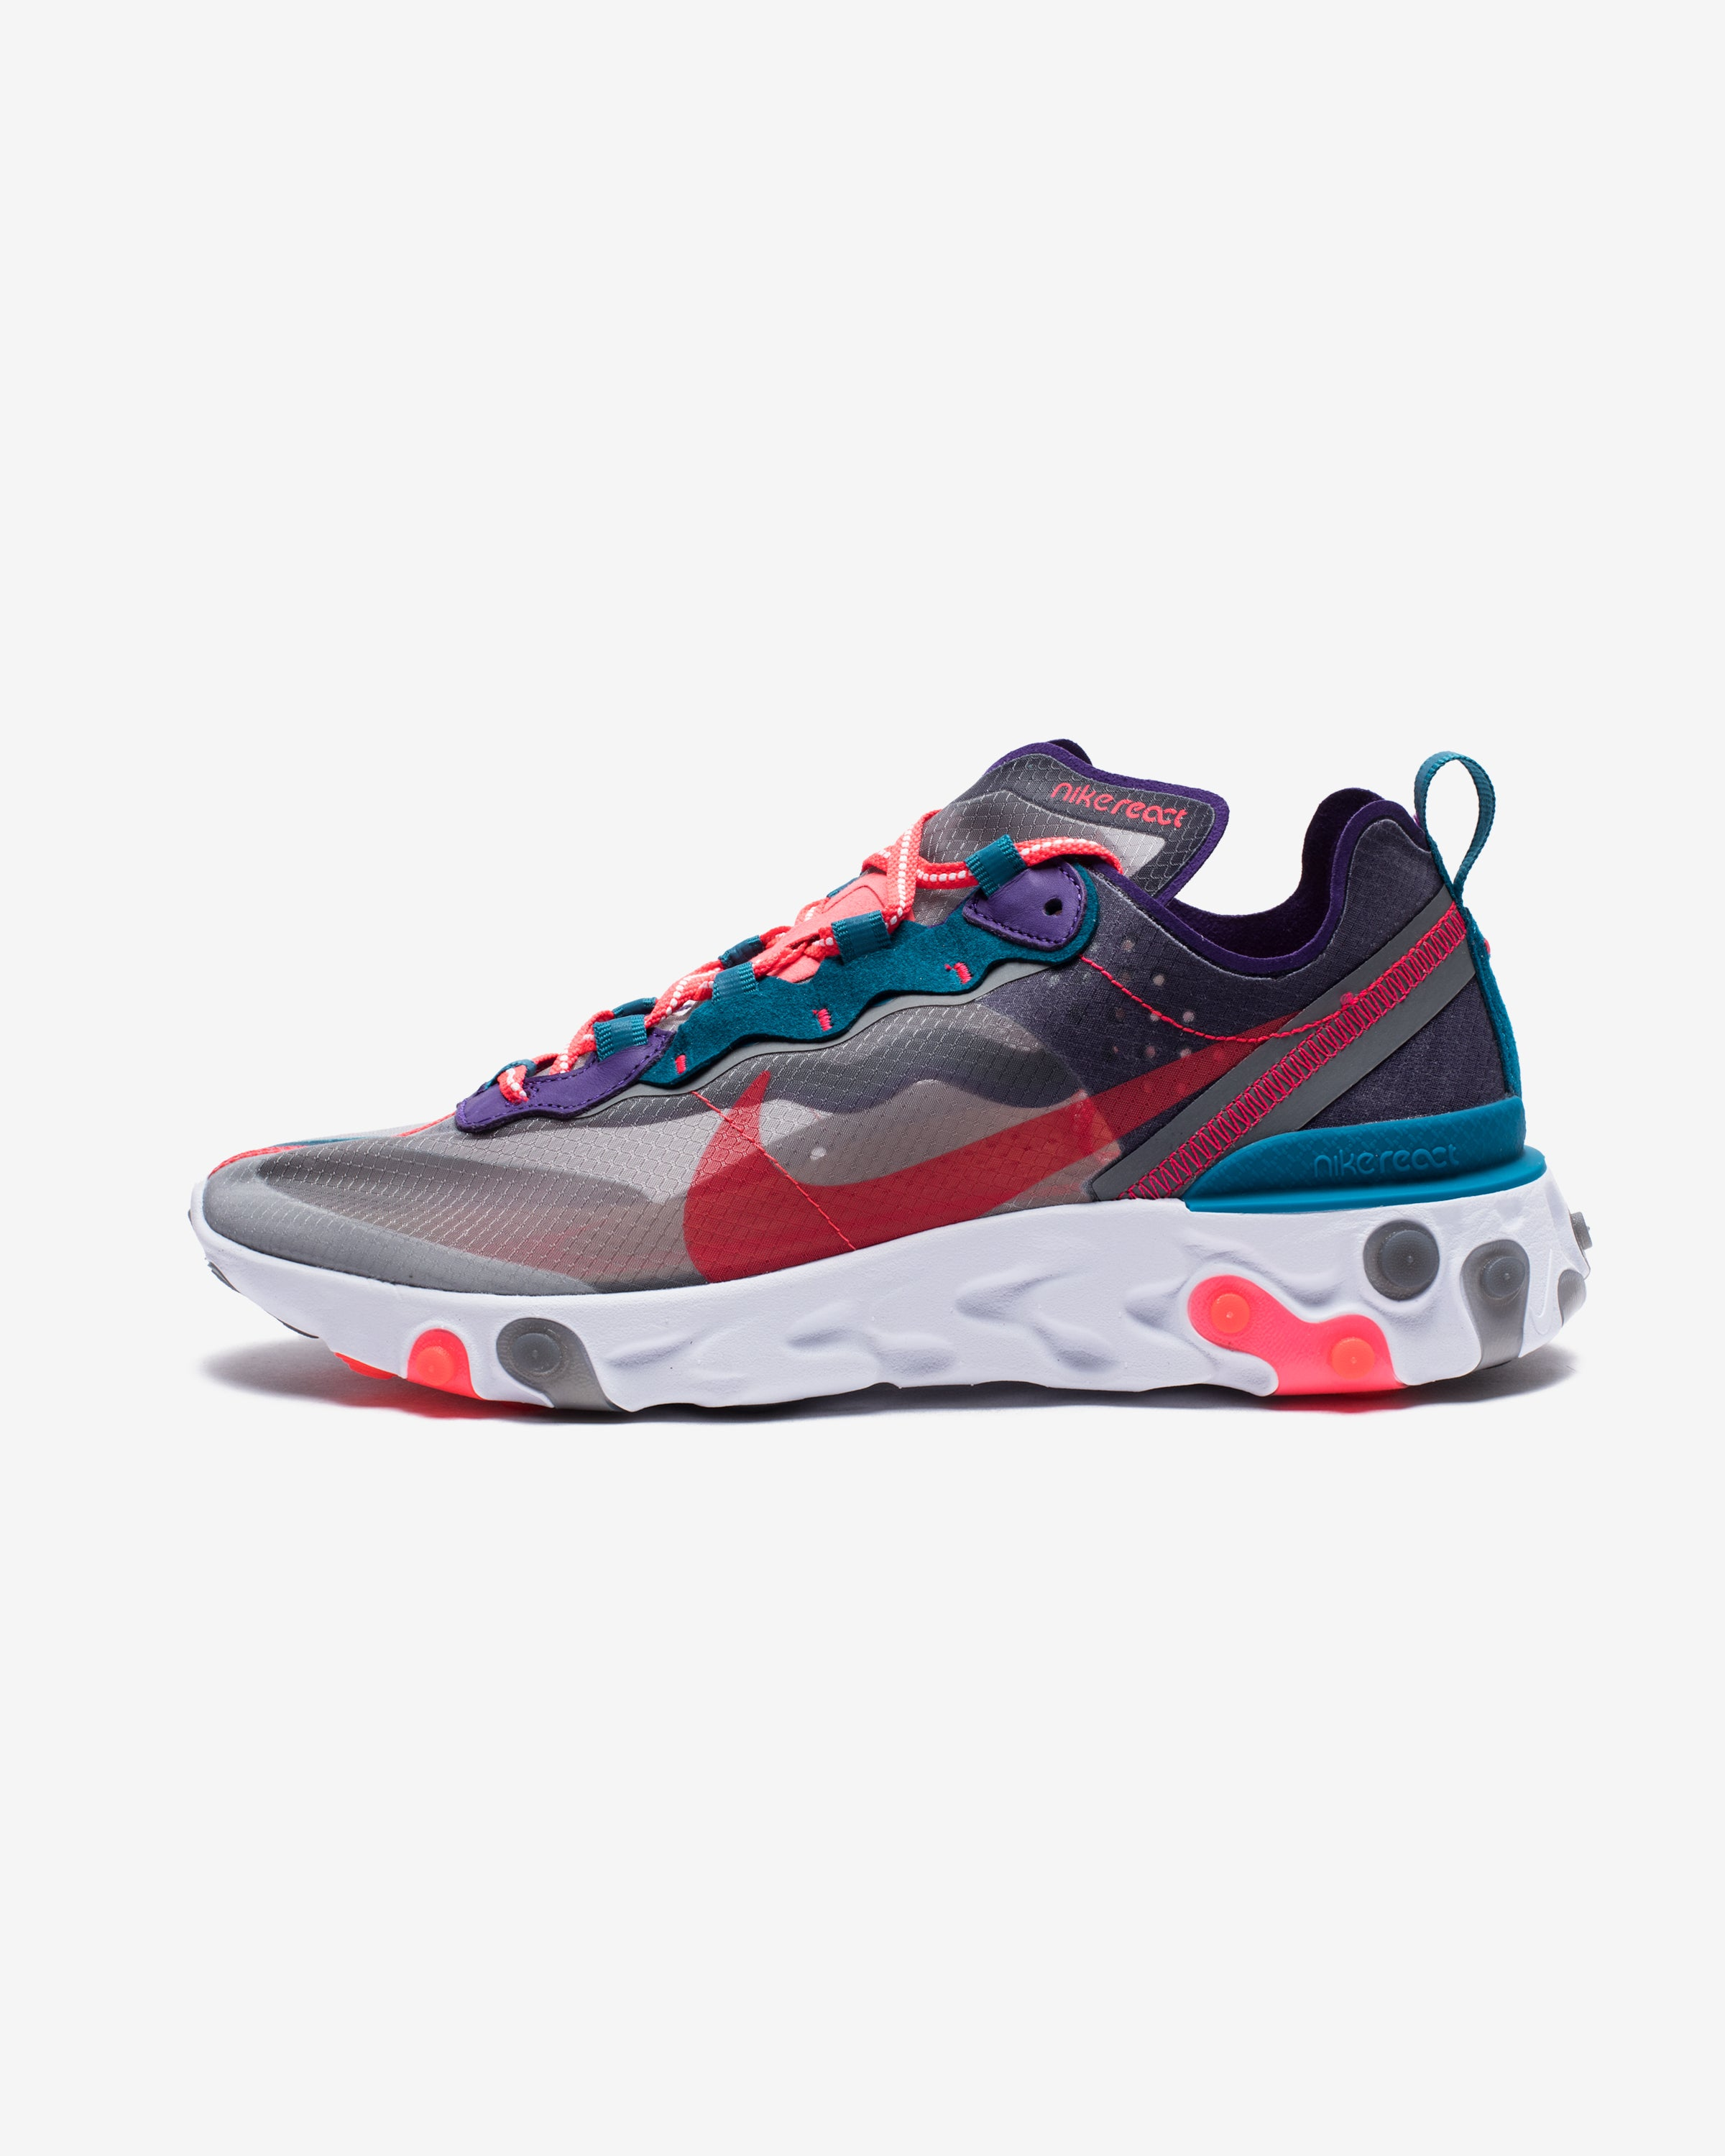 REACT ELEMENT 87 - BLACK/REDORBIT/WHITE/GREENABYSS